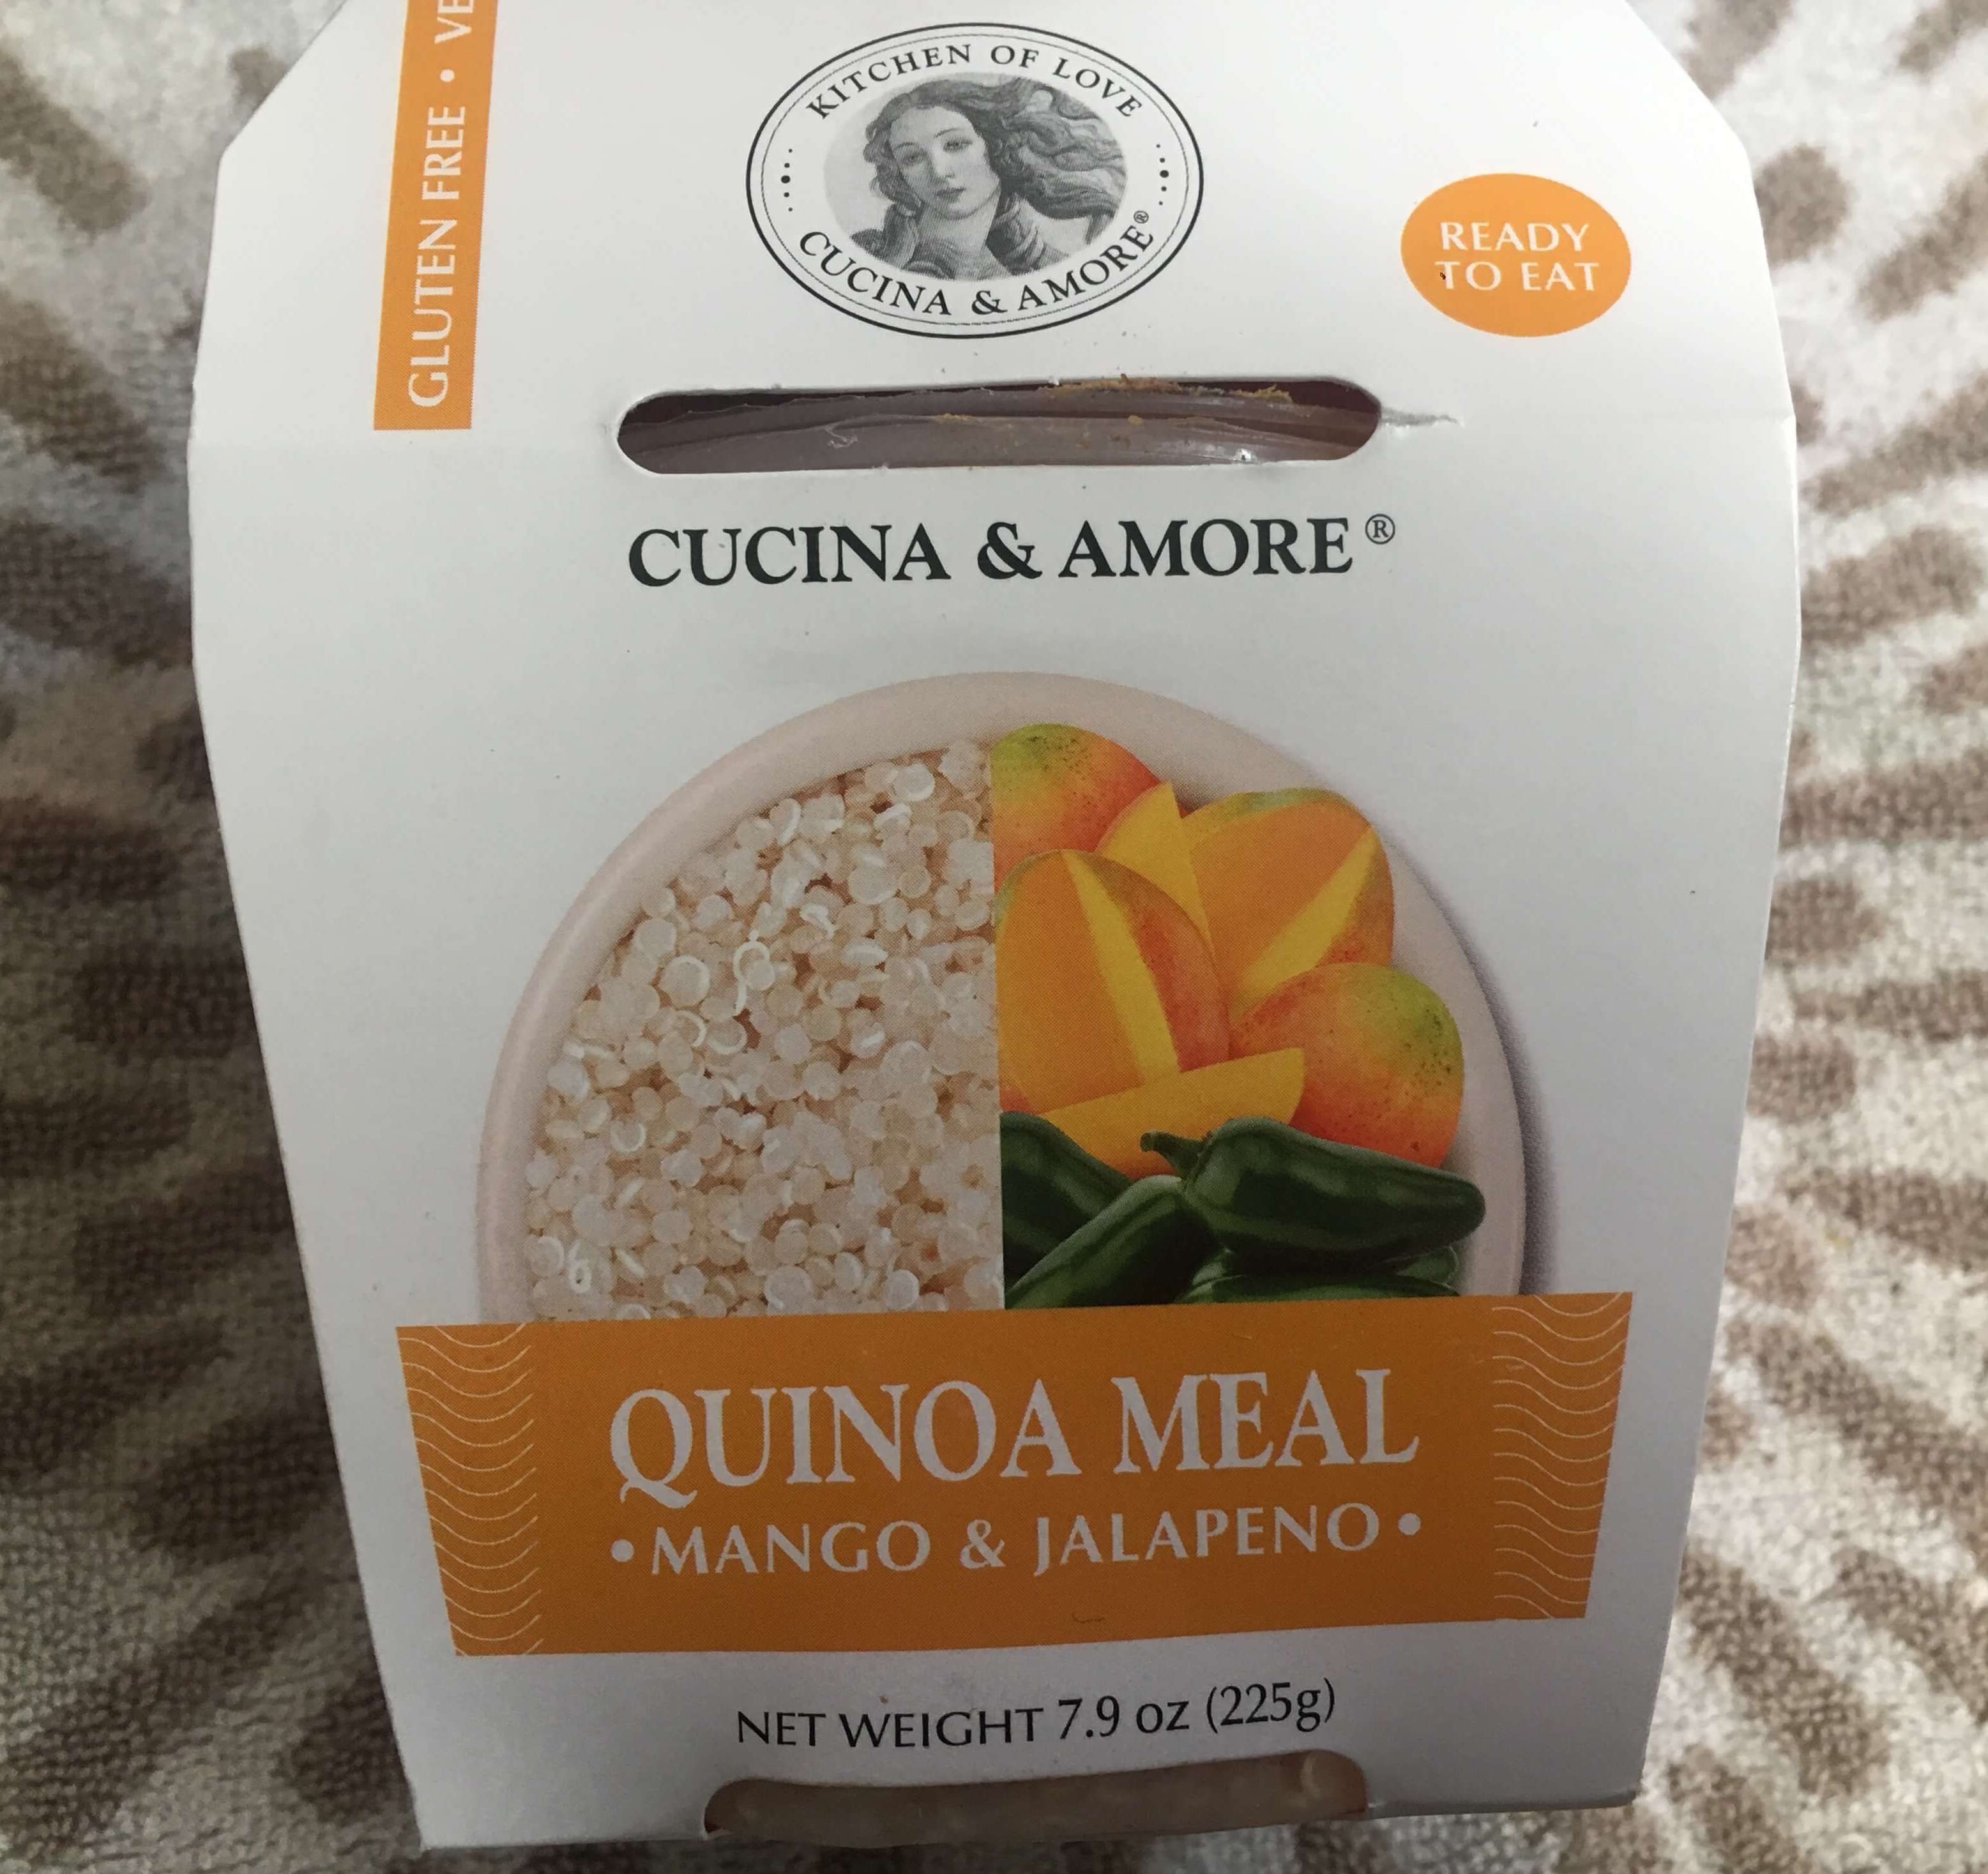 Quick and Healthy Food Options with Quinoa Meals